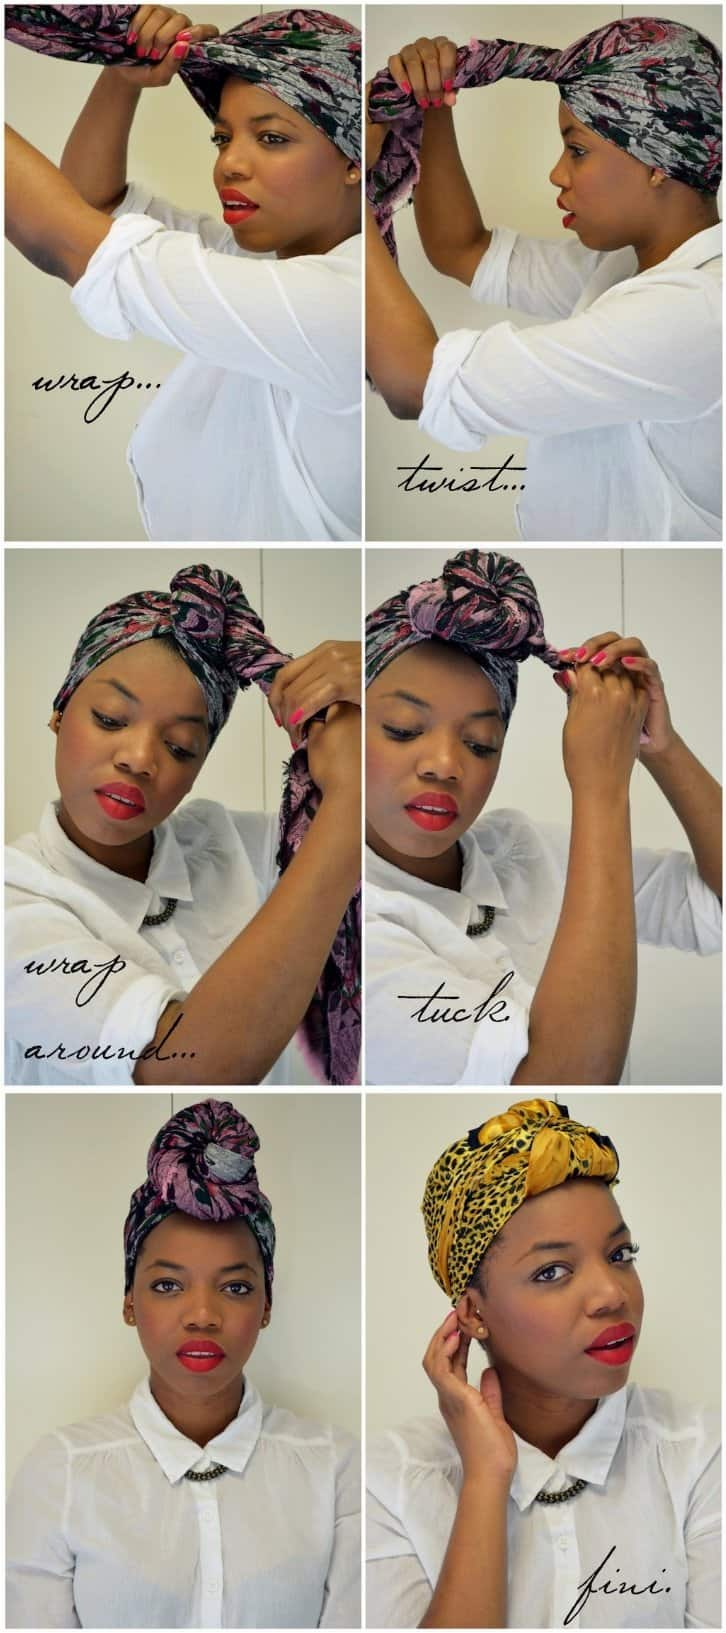 Watch 10 Stunning Ways to Wear A Headscarf This Summer video